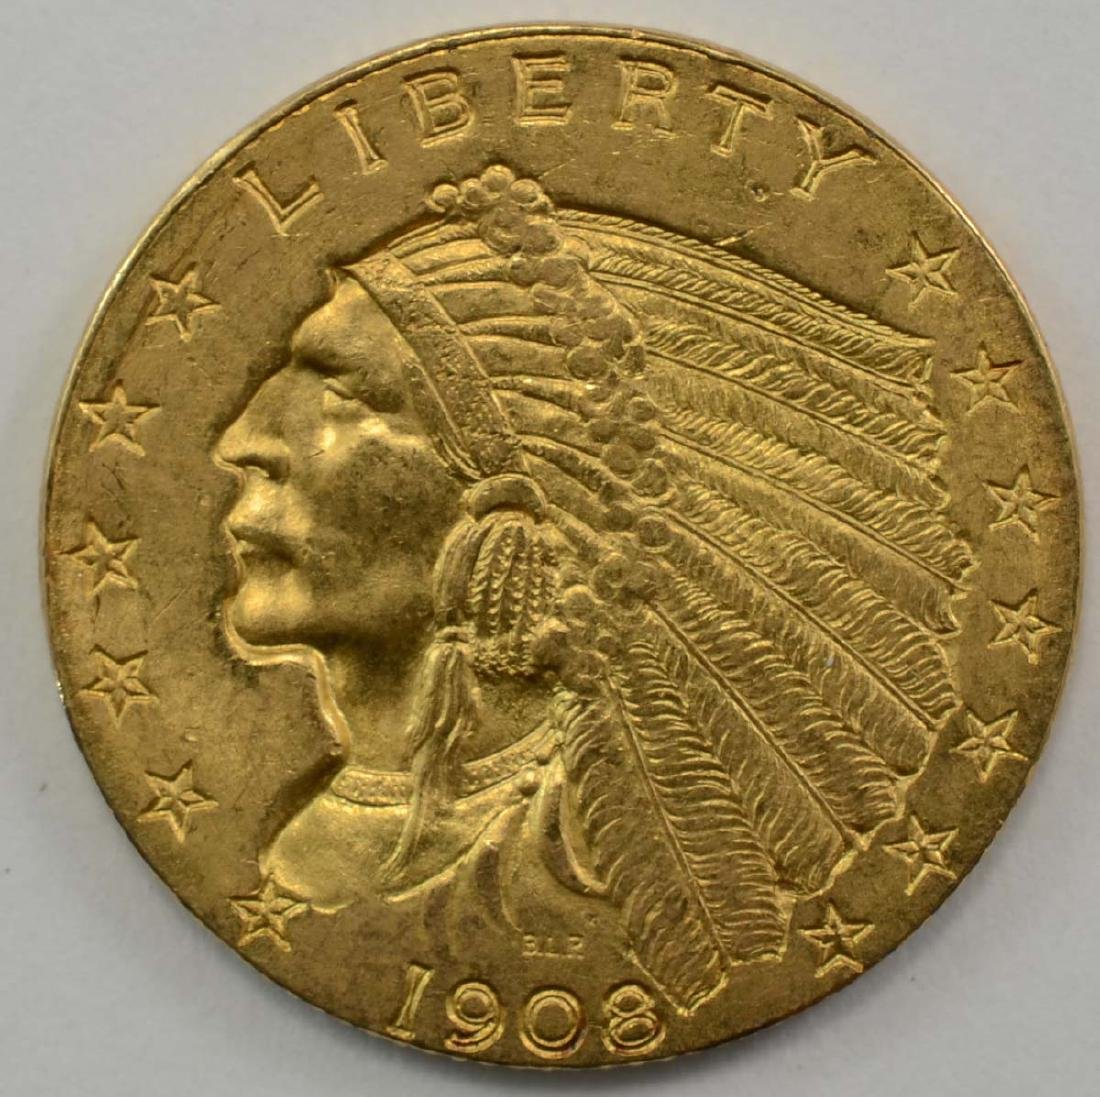 1908 2 1/2 Gold Indian Coin